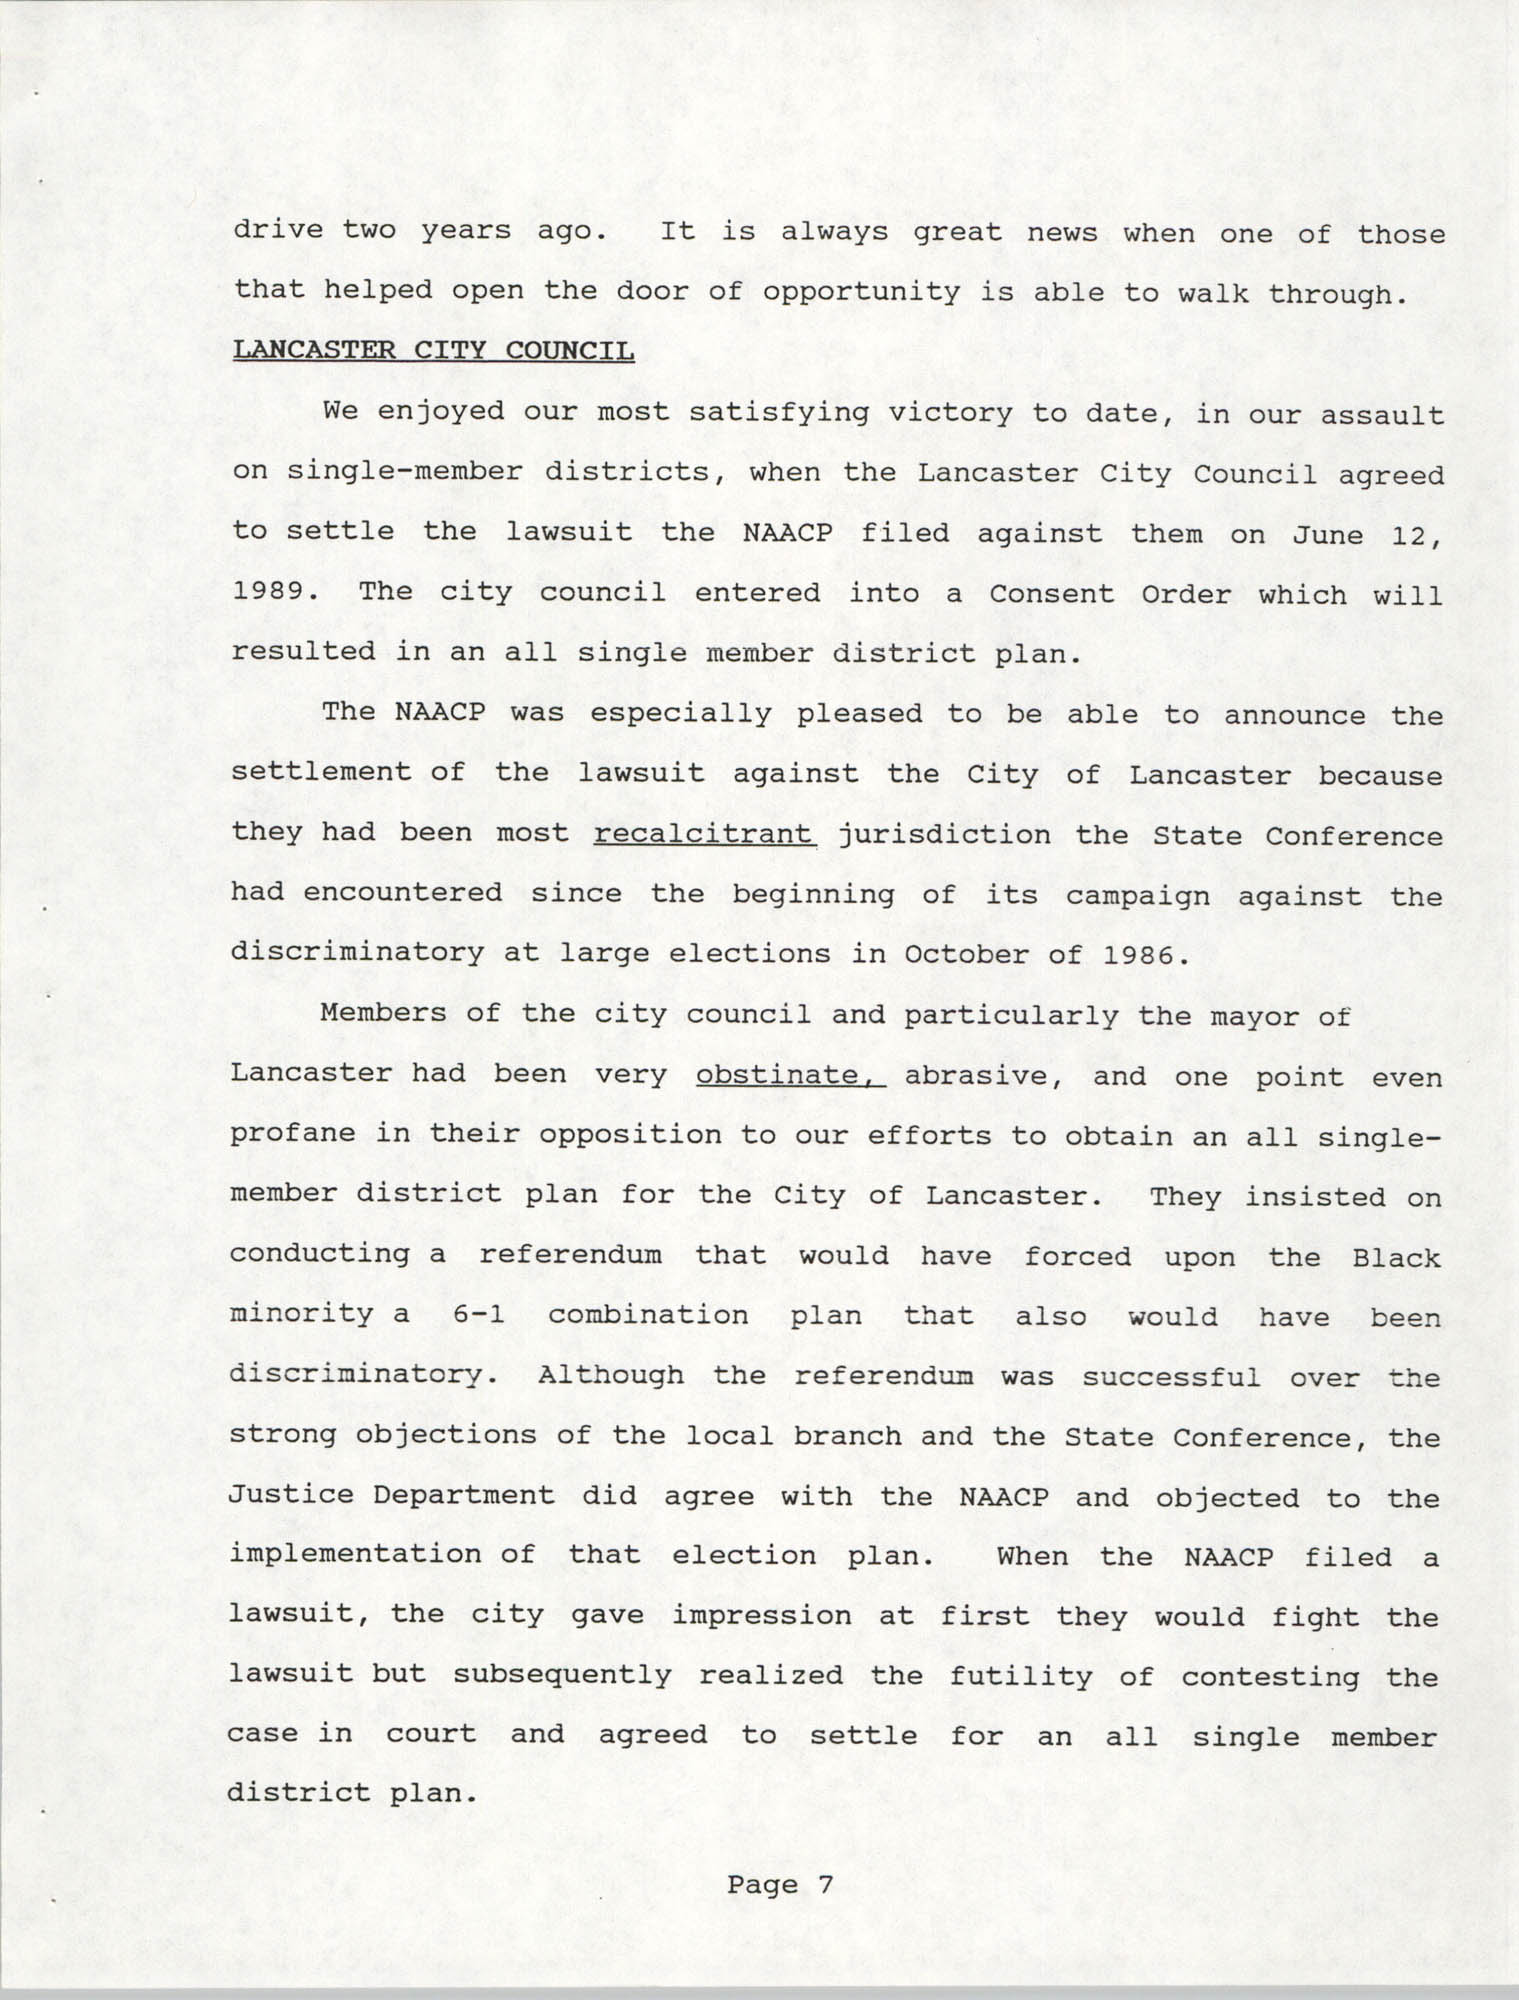 South Carolina Conference of Branches of the NAACP, 1990 Annual Report, Part One, Page 7